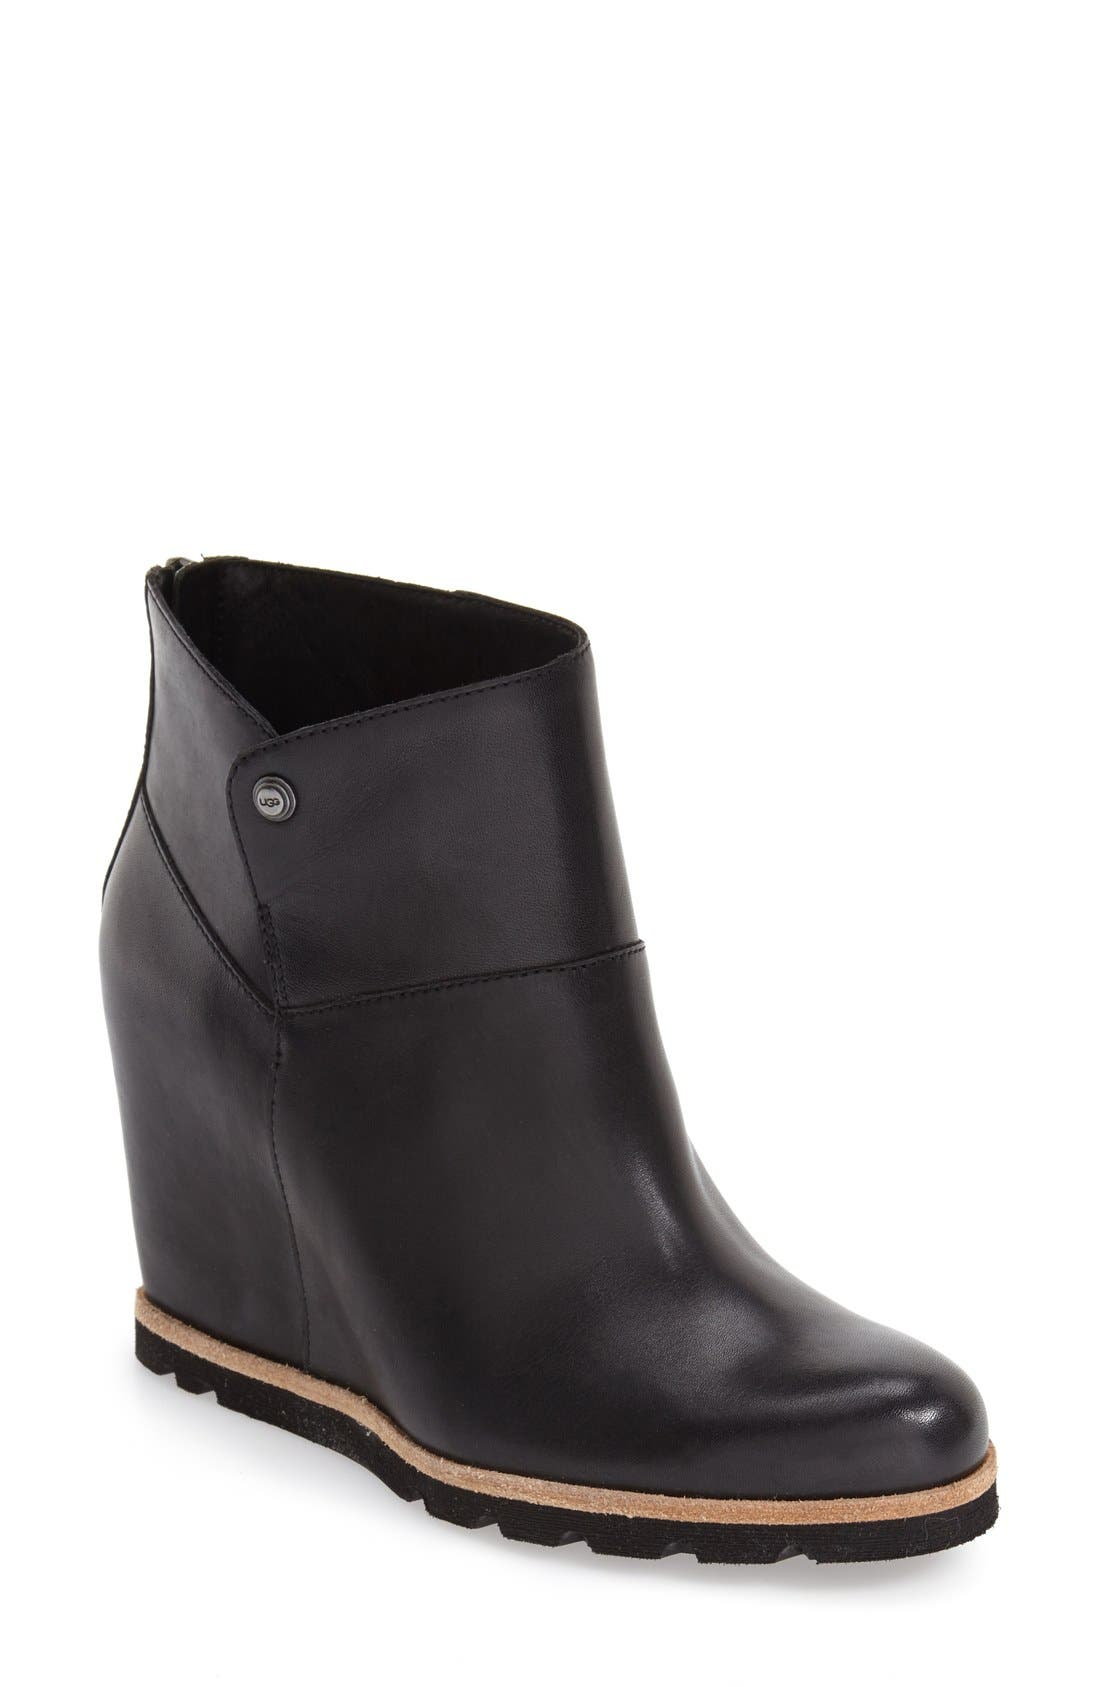 Main Image - UGG® 'Amal' Wedge Boot (Women)